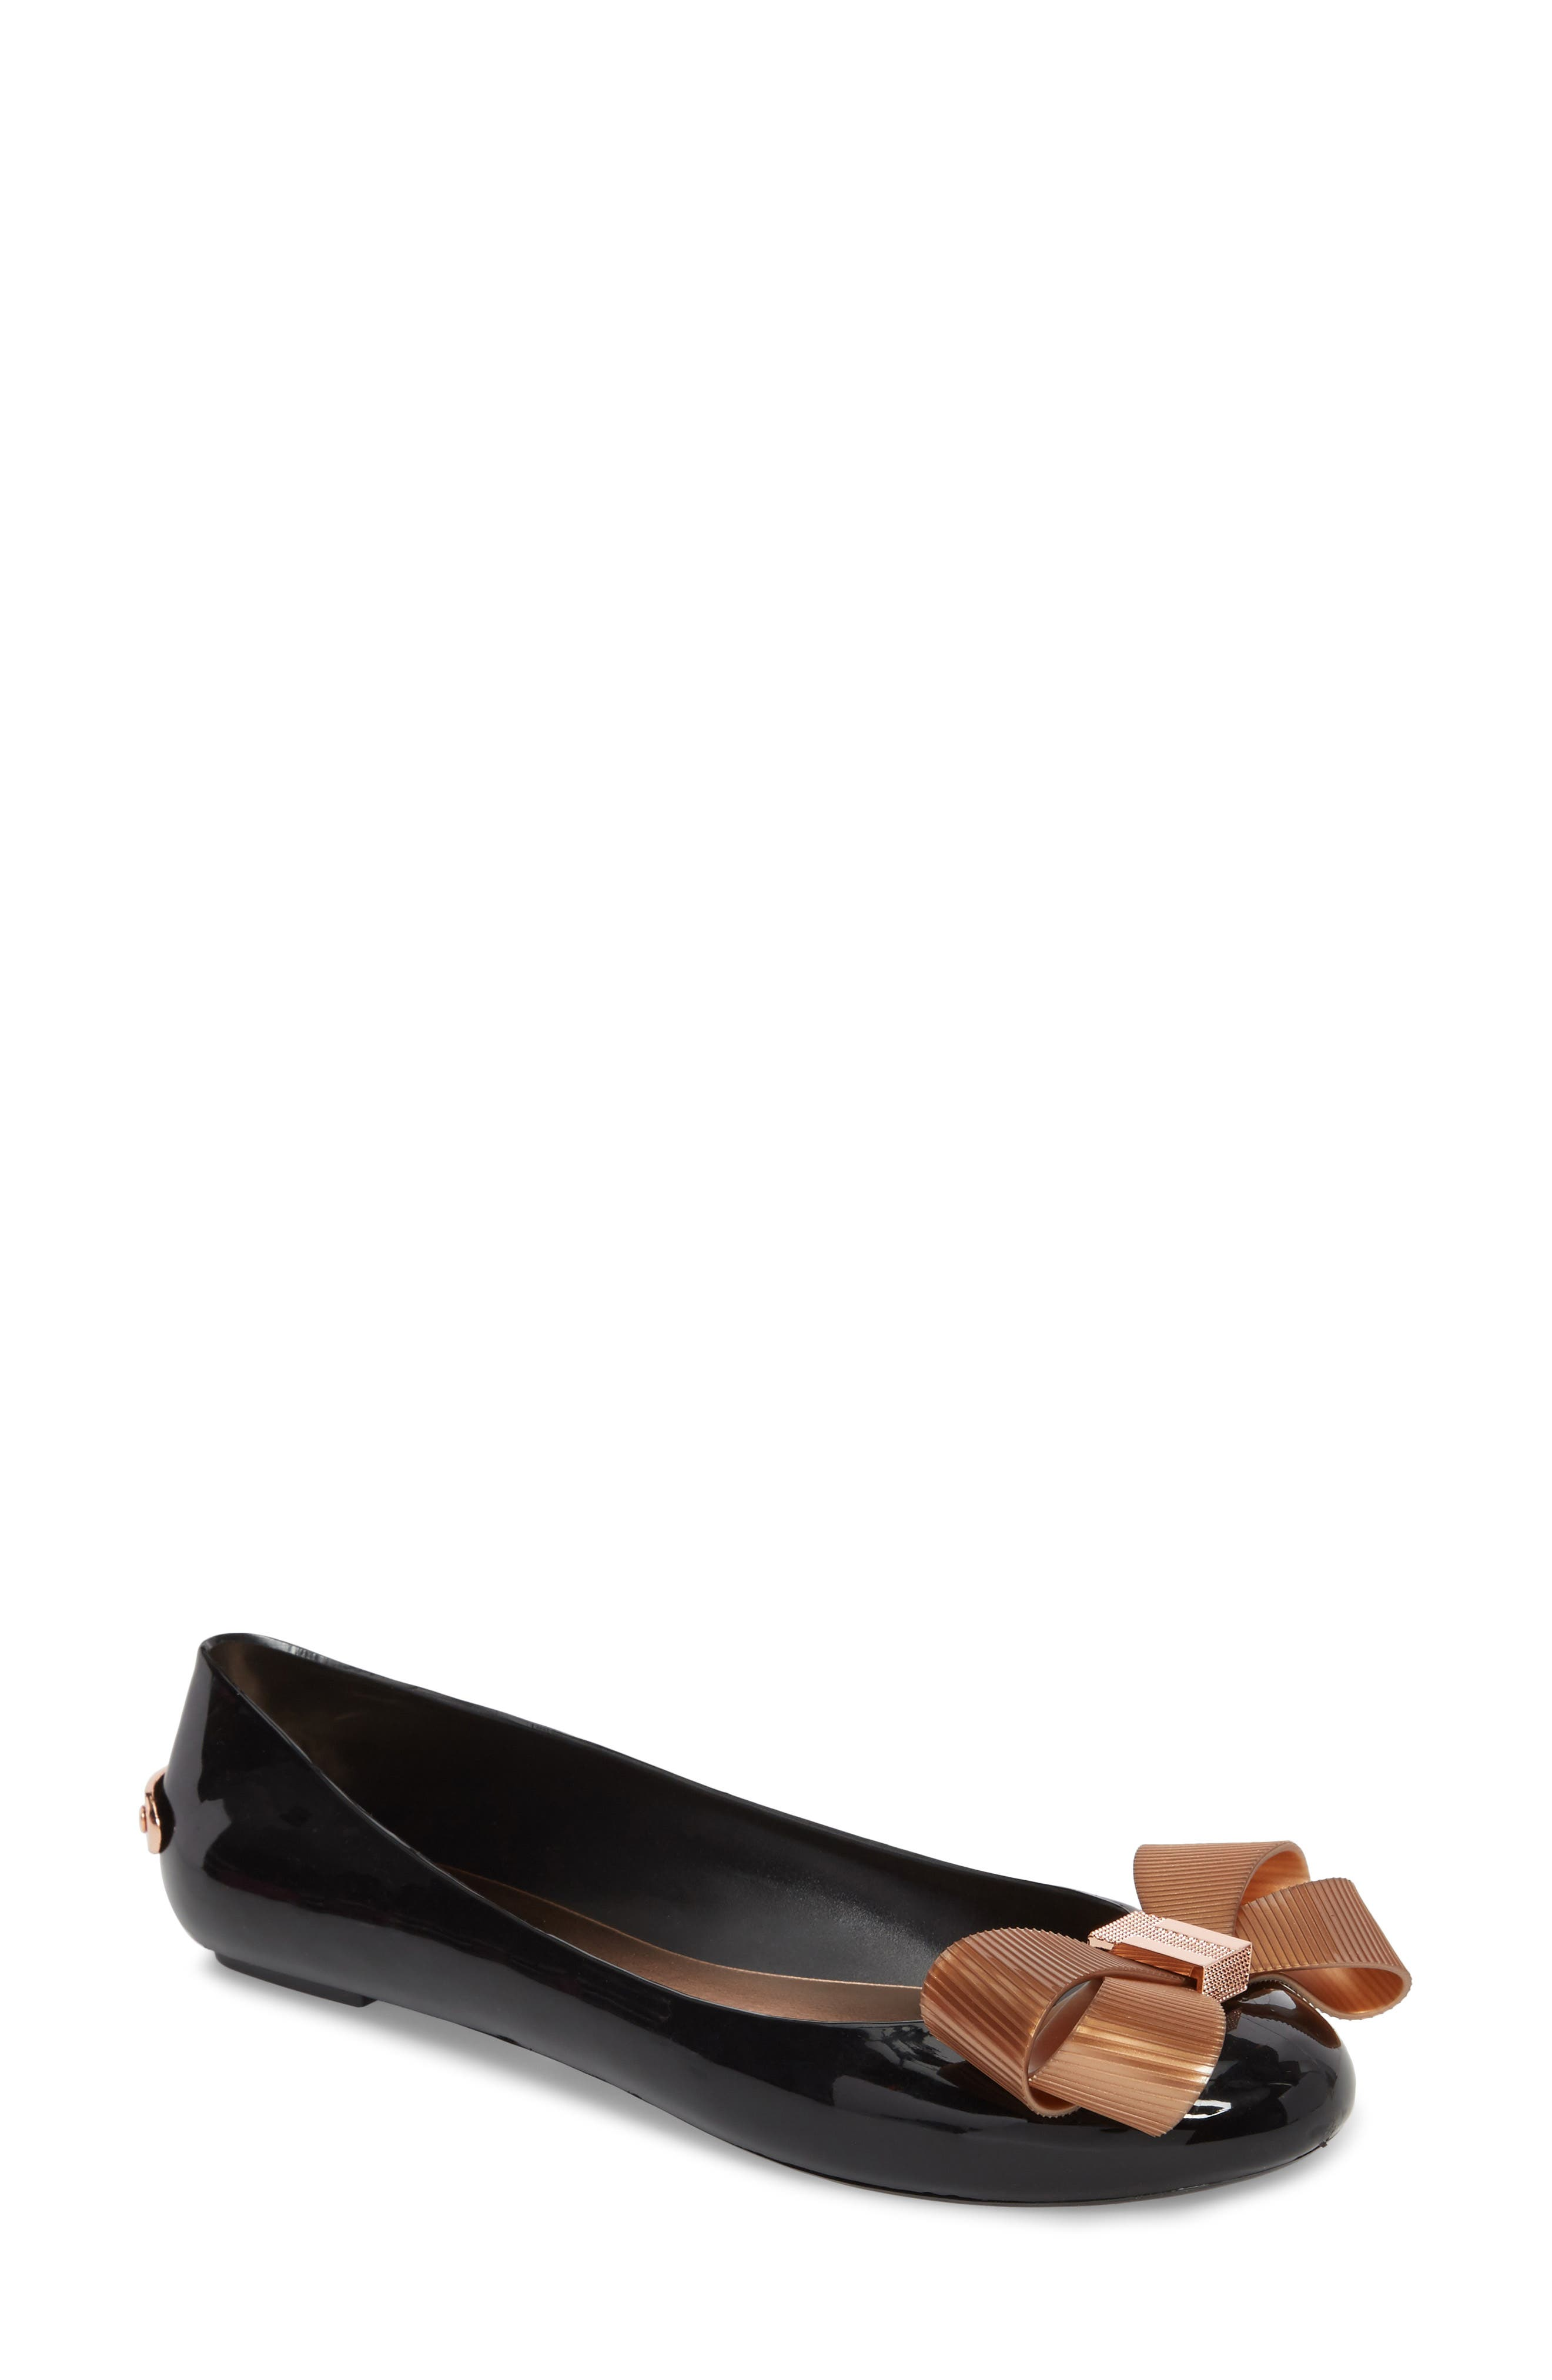 Larmiar Flat,                             Main thumbnail 1, color,                             Black